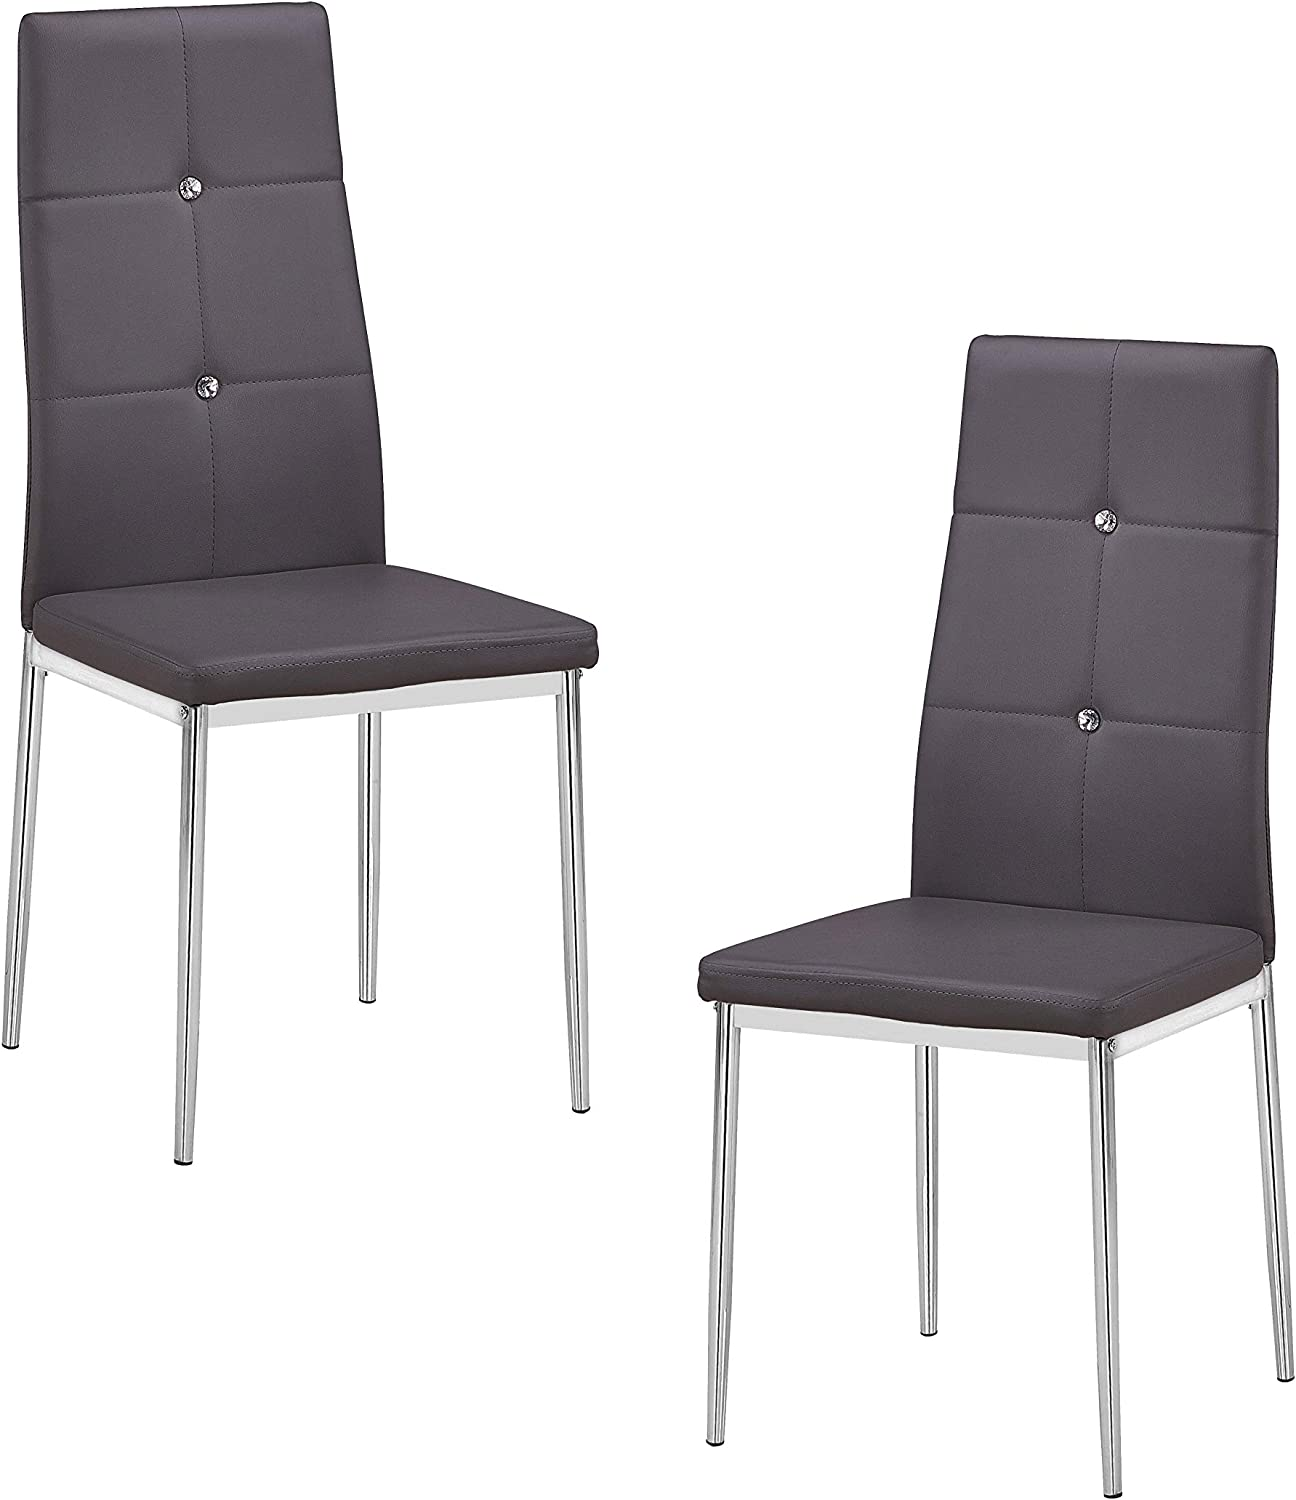 Best Master Furniture T246 Upholstered Dining Chair Black